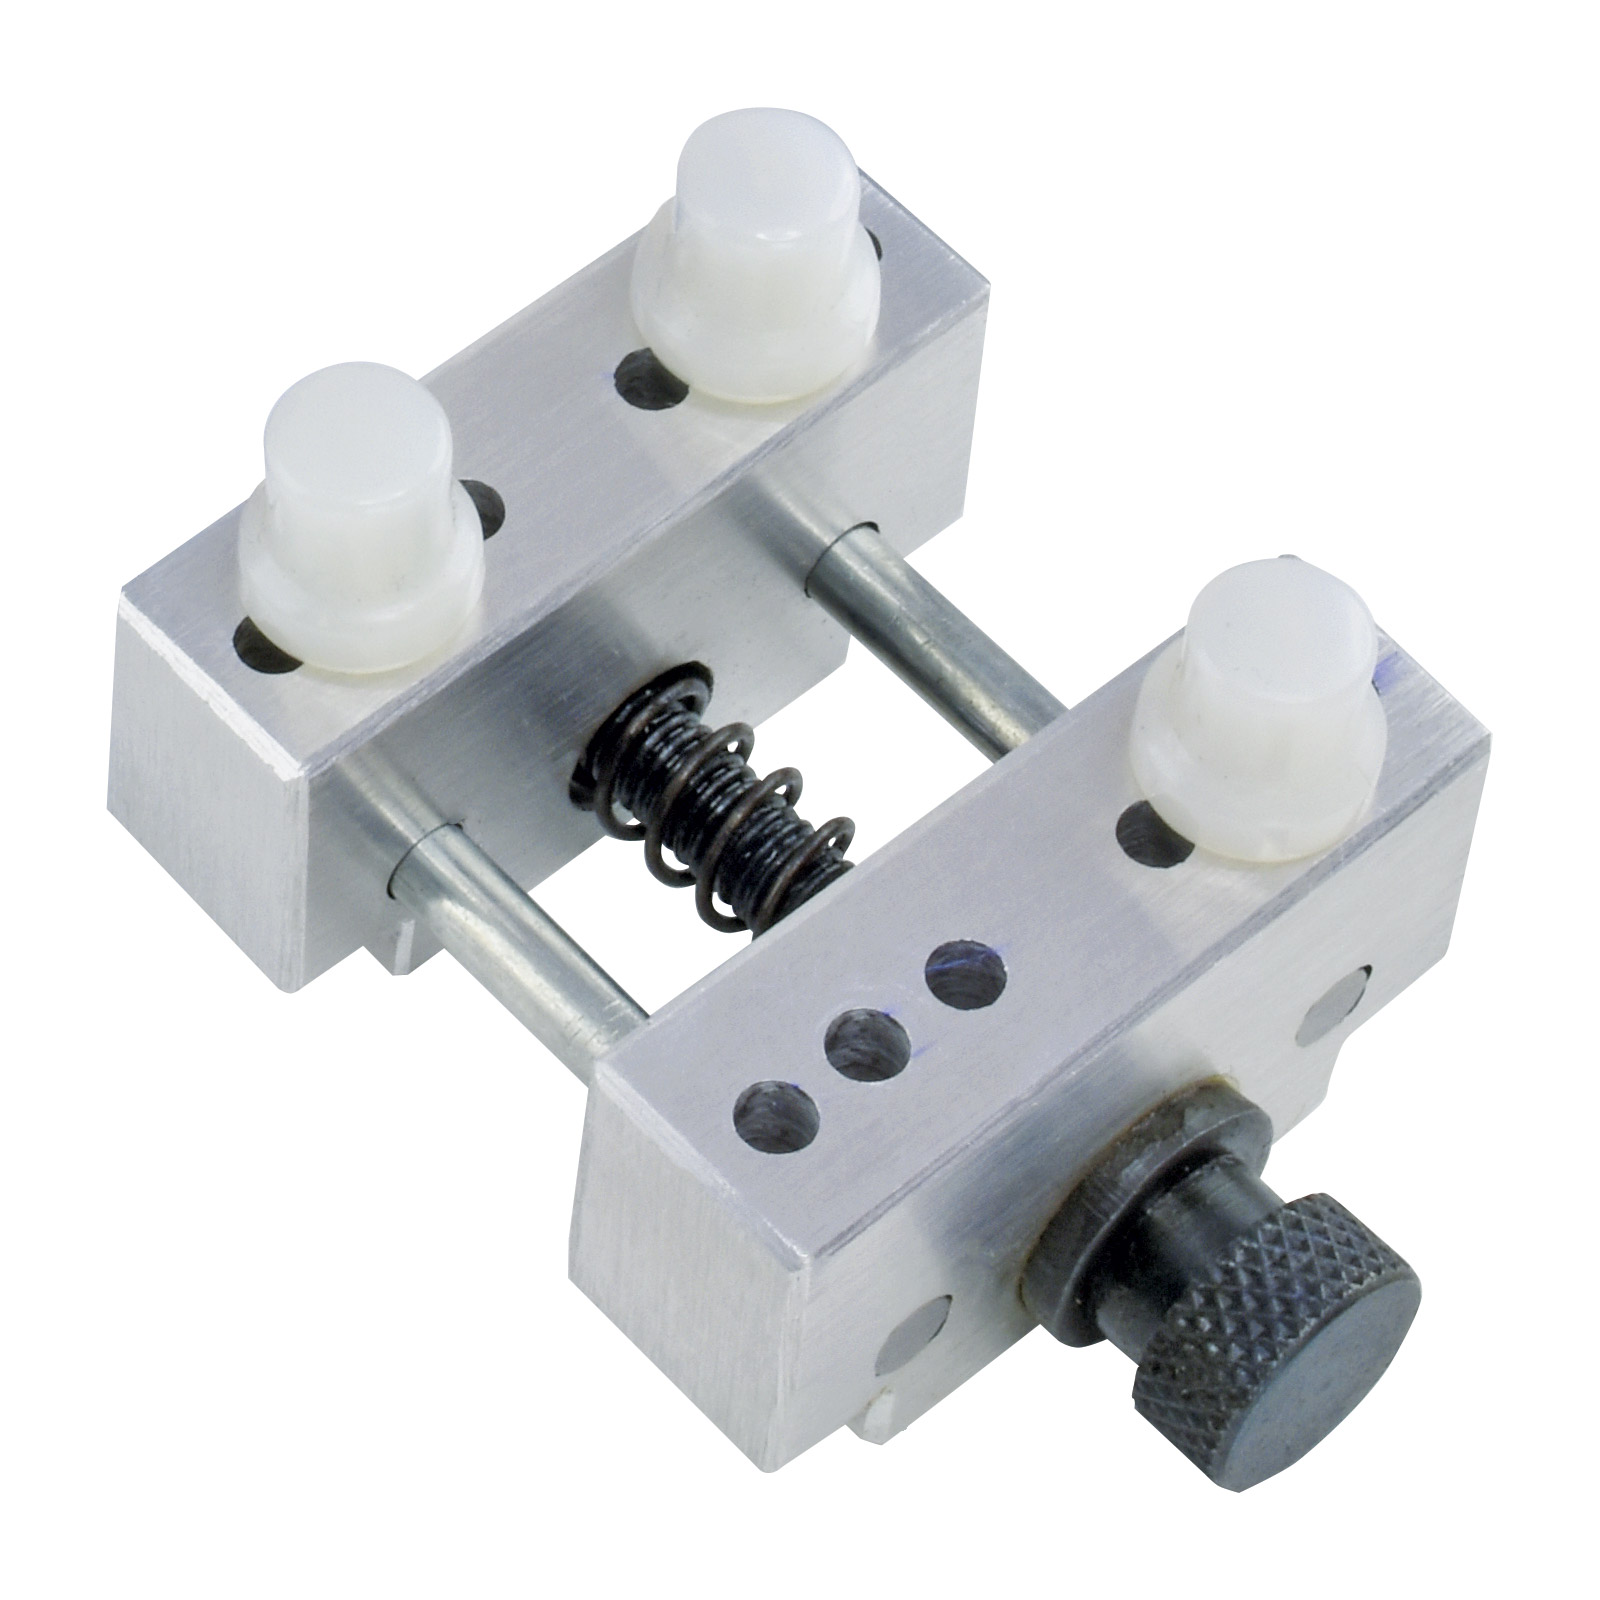 Little Mini Vise